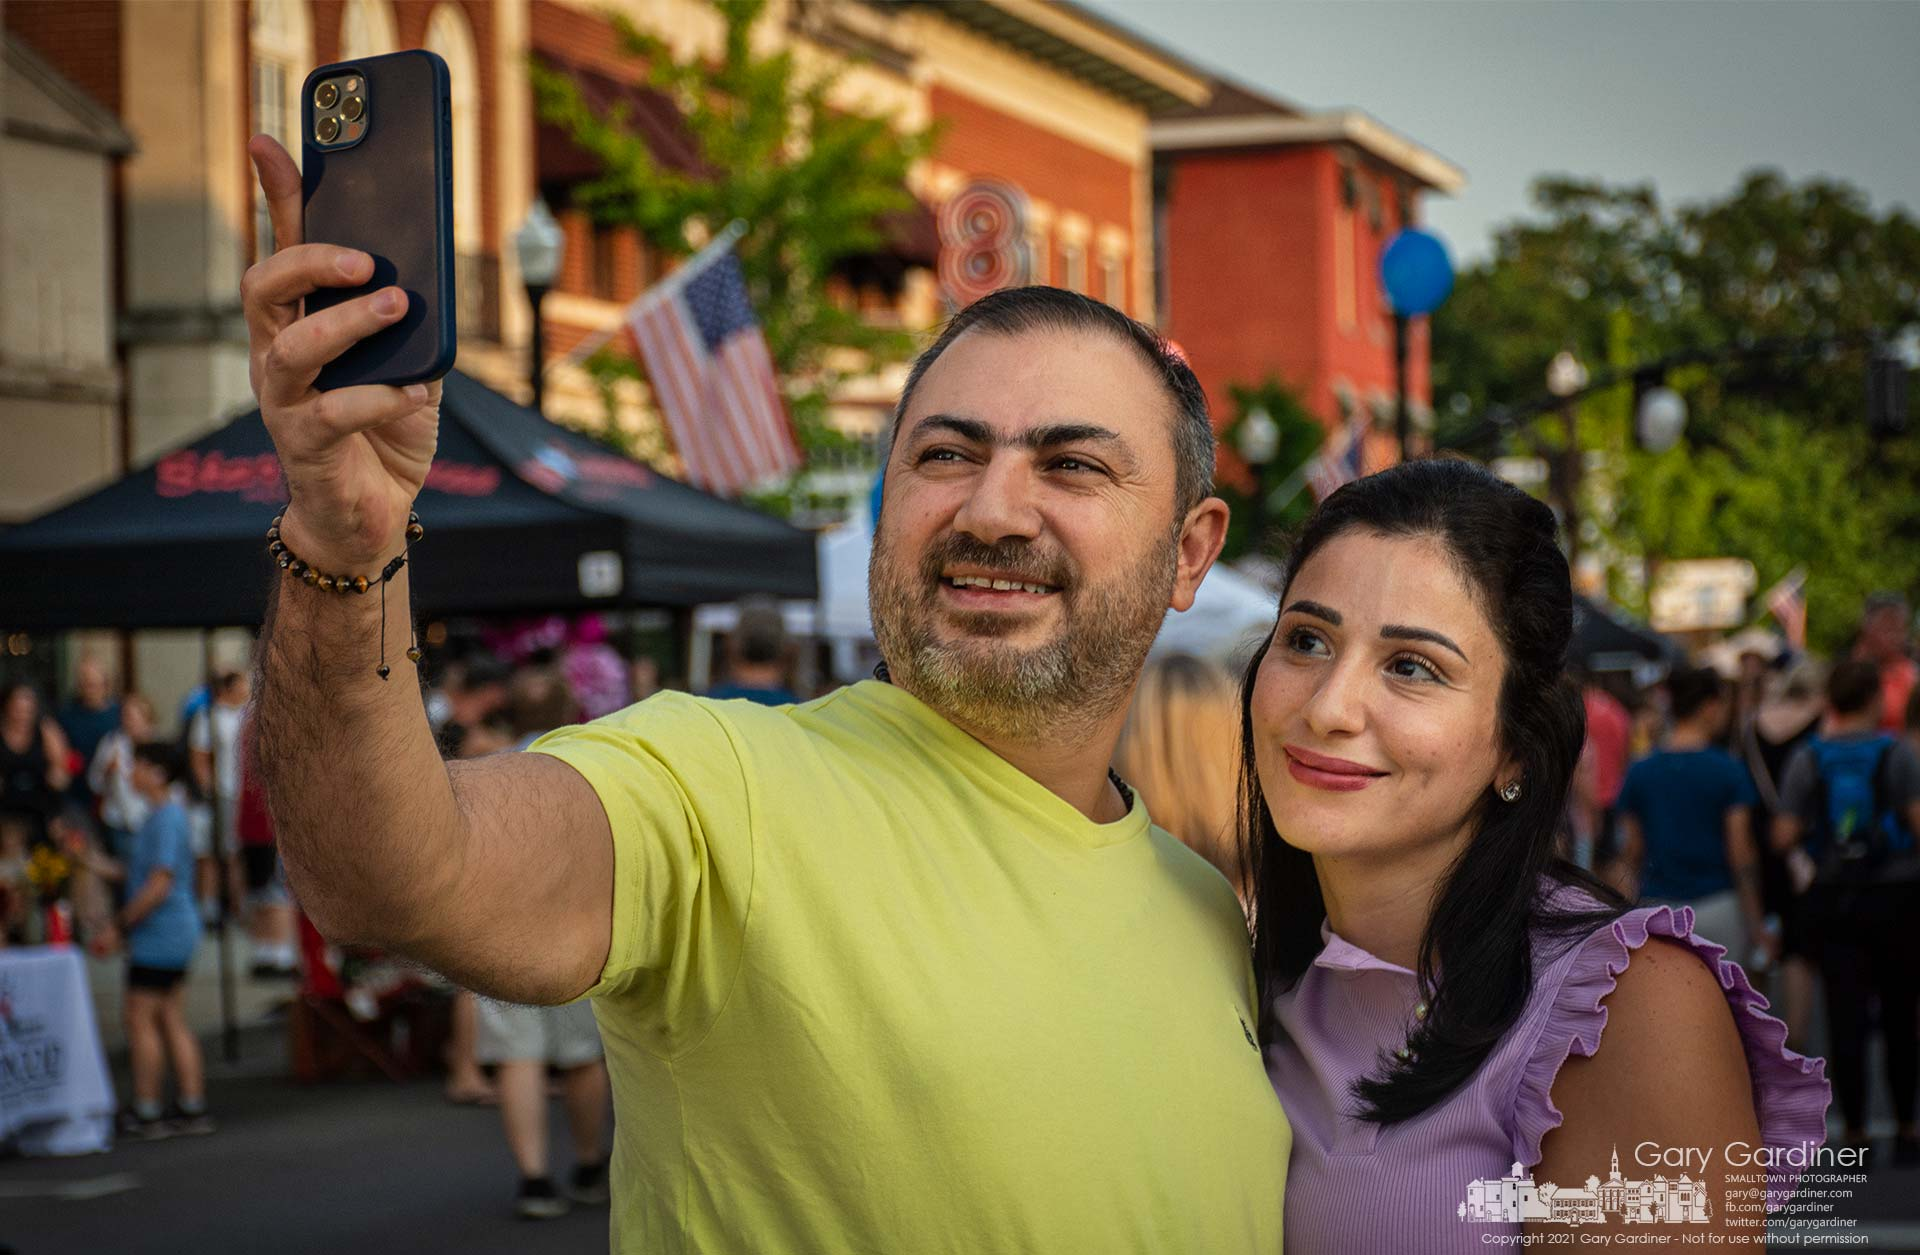 A couple pauses to photograph themselves with their smartphone in the middle of the intersection of State and Main during Fourth Friday in Westerville. My Final Photo for July 23, 2021.